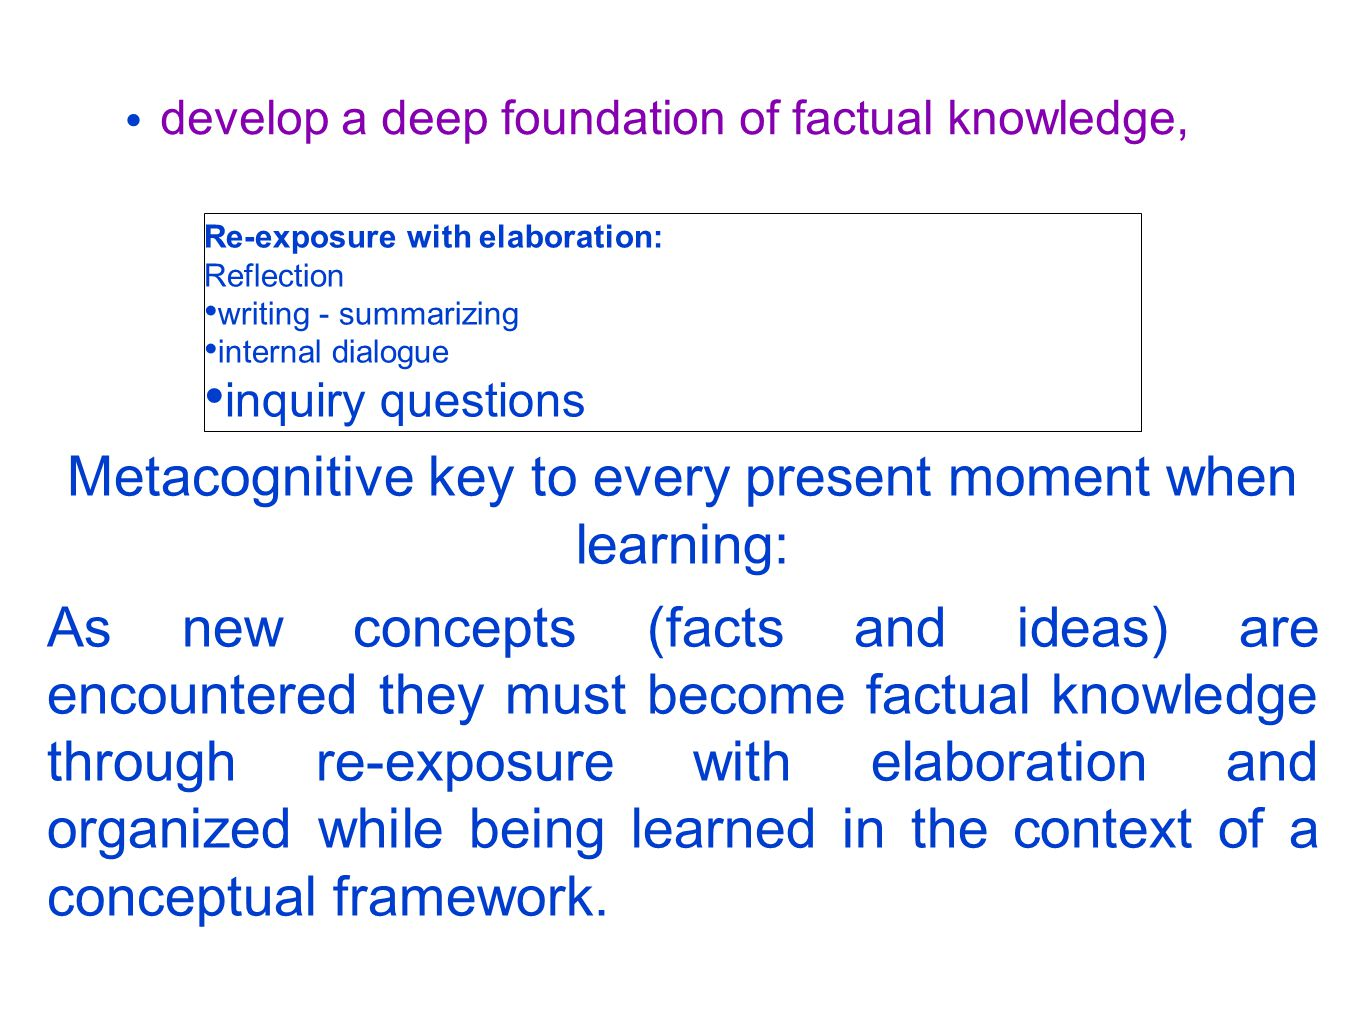 develop a deep foundation of factual knowledge, Re-exposure with elaboration: Reflection writing - summarizing internal dialogue inquiry questions Metacognitive key to every present moment when learning: As new concepts (facts and ideas) are encountered they must become factual knowledge through re-exposure with elaboration and organized while being learned in the context of a conceptual framework.